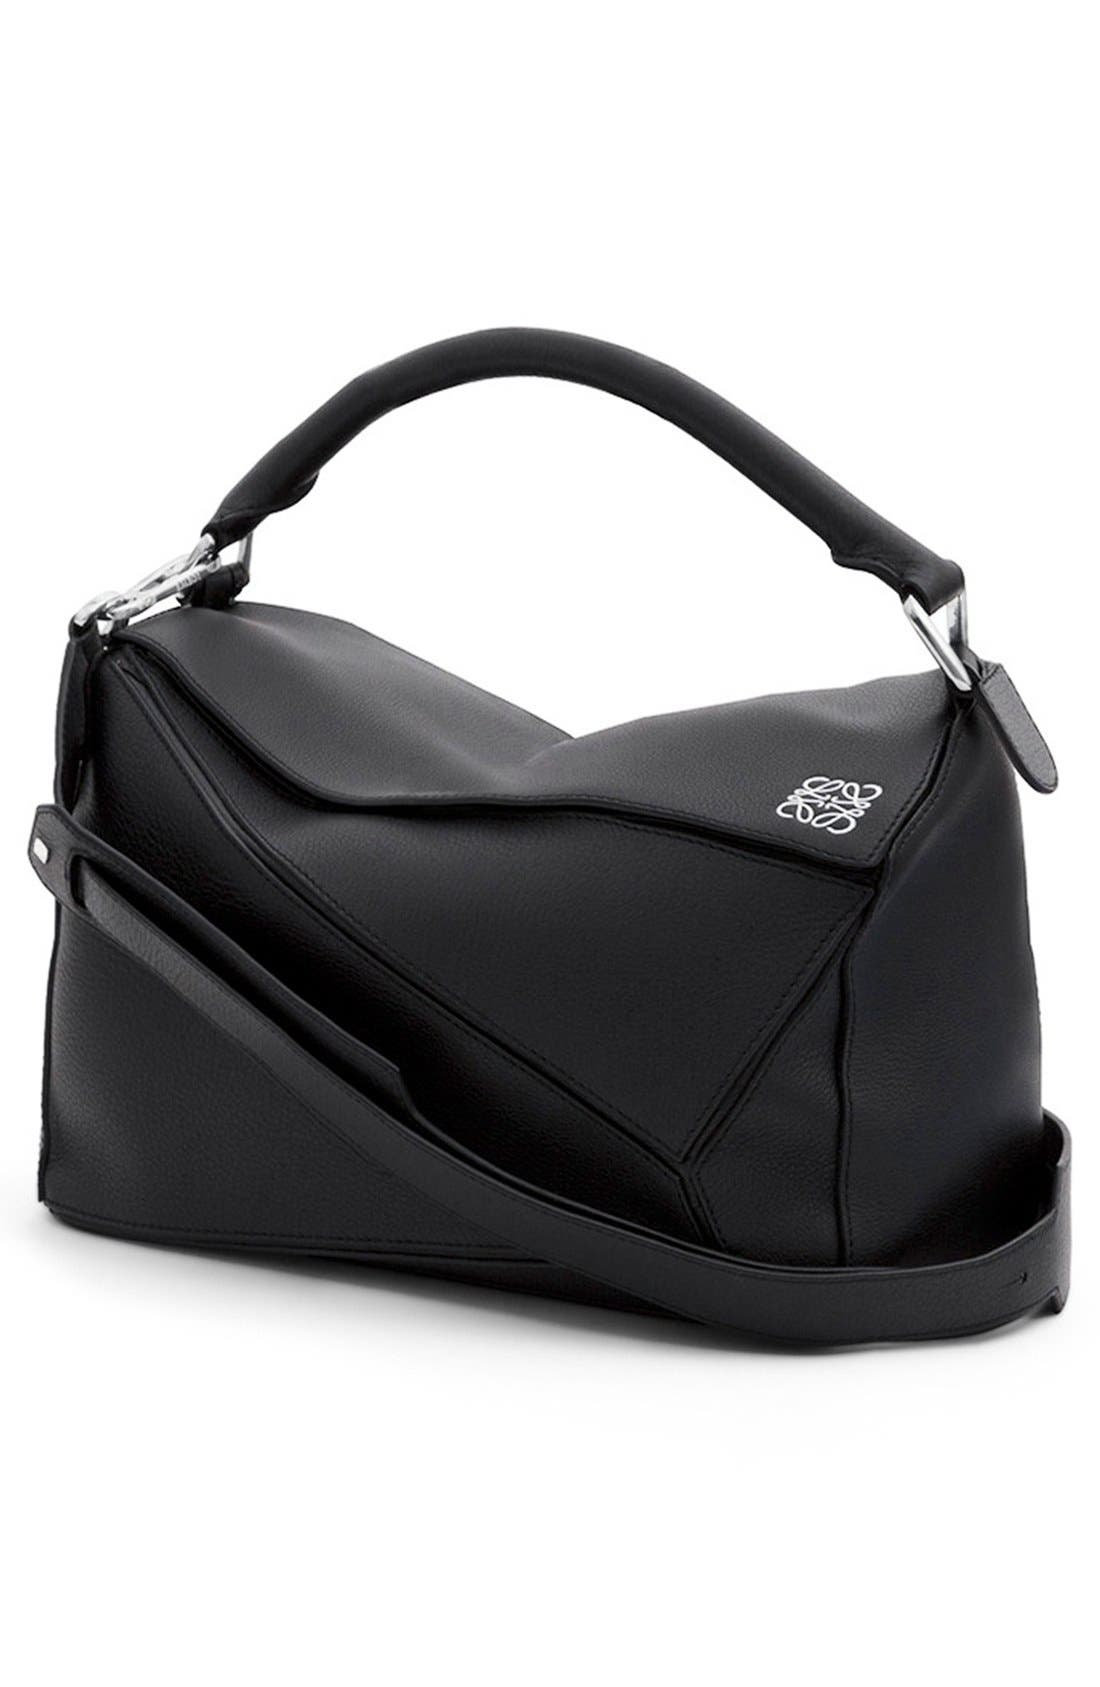 Loewe 'Puzzle' Leather Bag